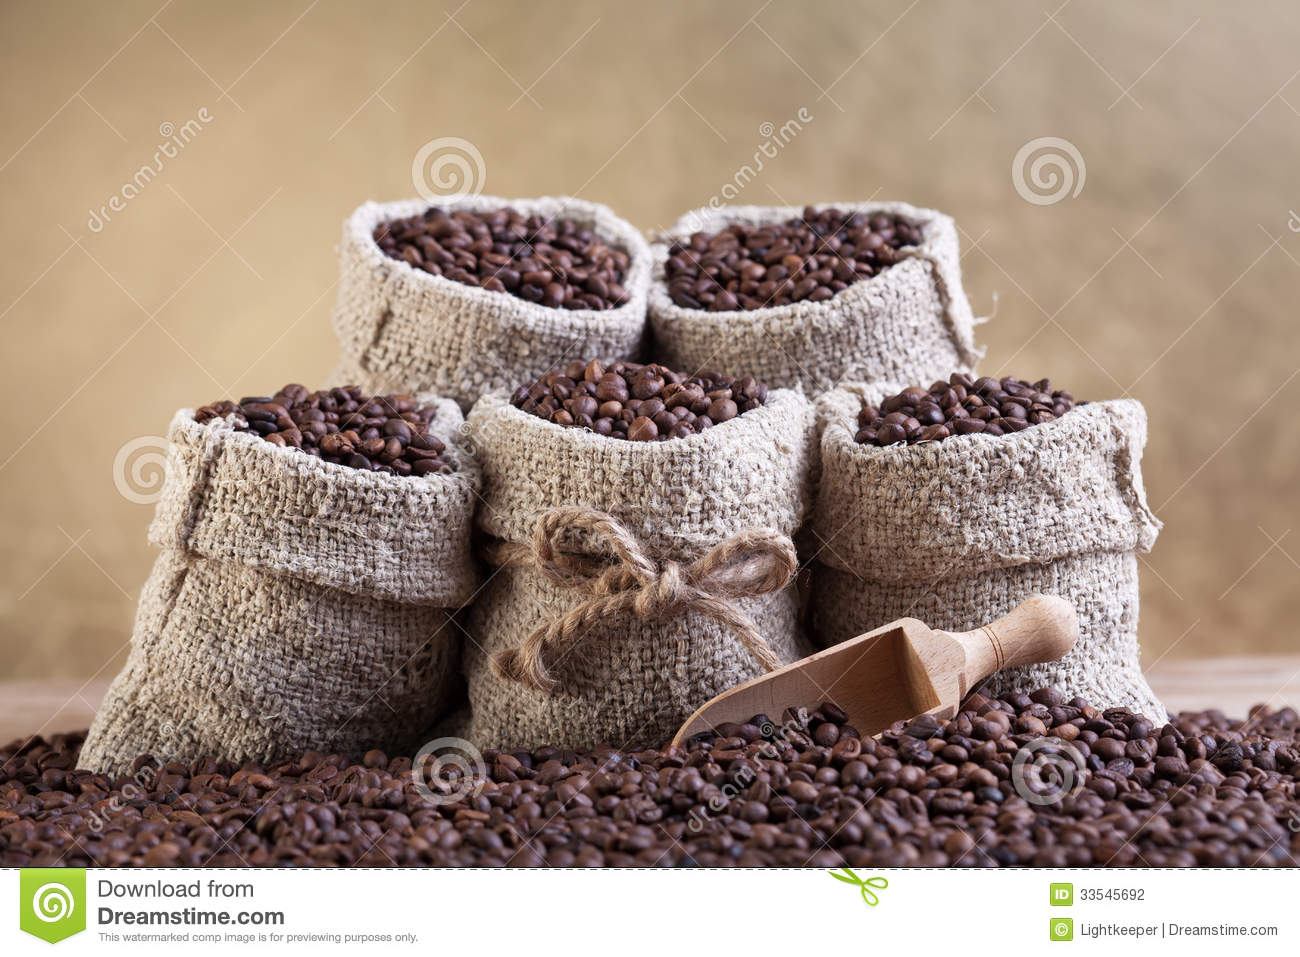 roasted coffee beans in small burlap bags stock photo image of beans taste 33545692. Black Bedroom Furniture Sets. Home Design Ideas